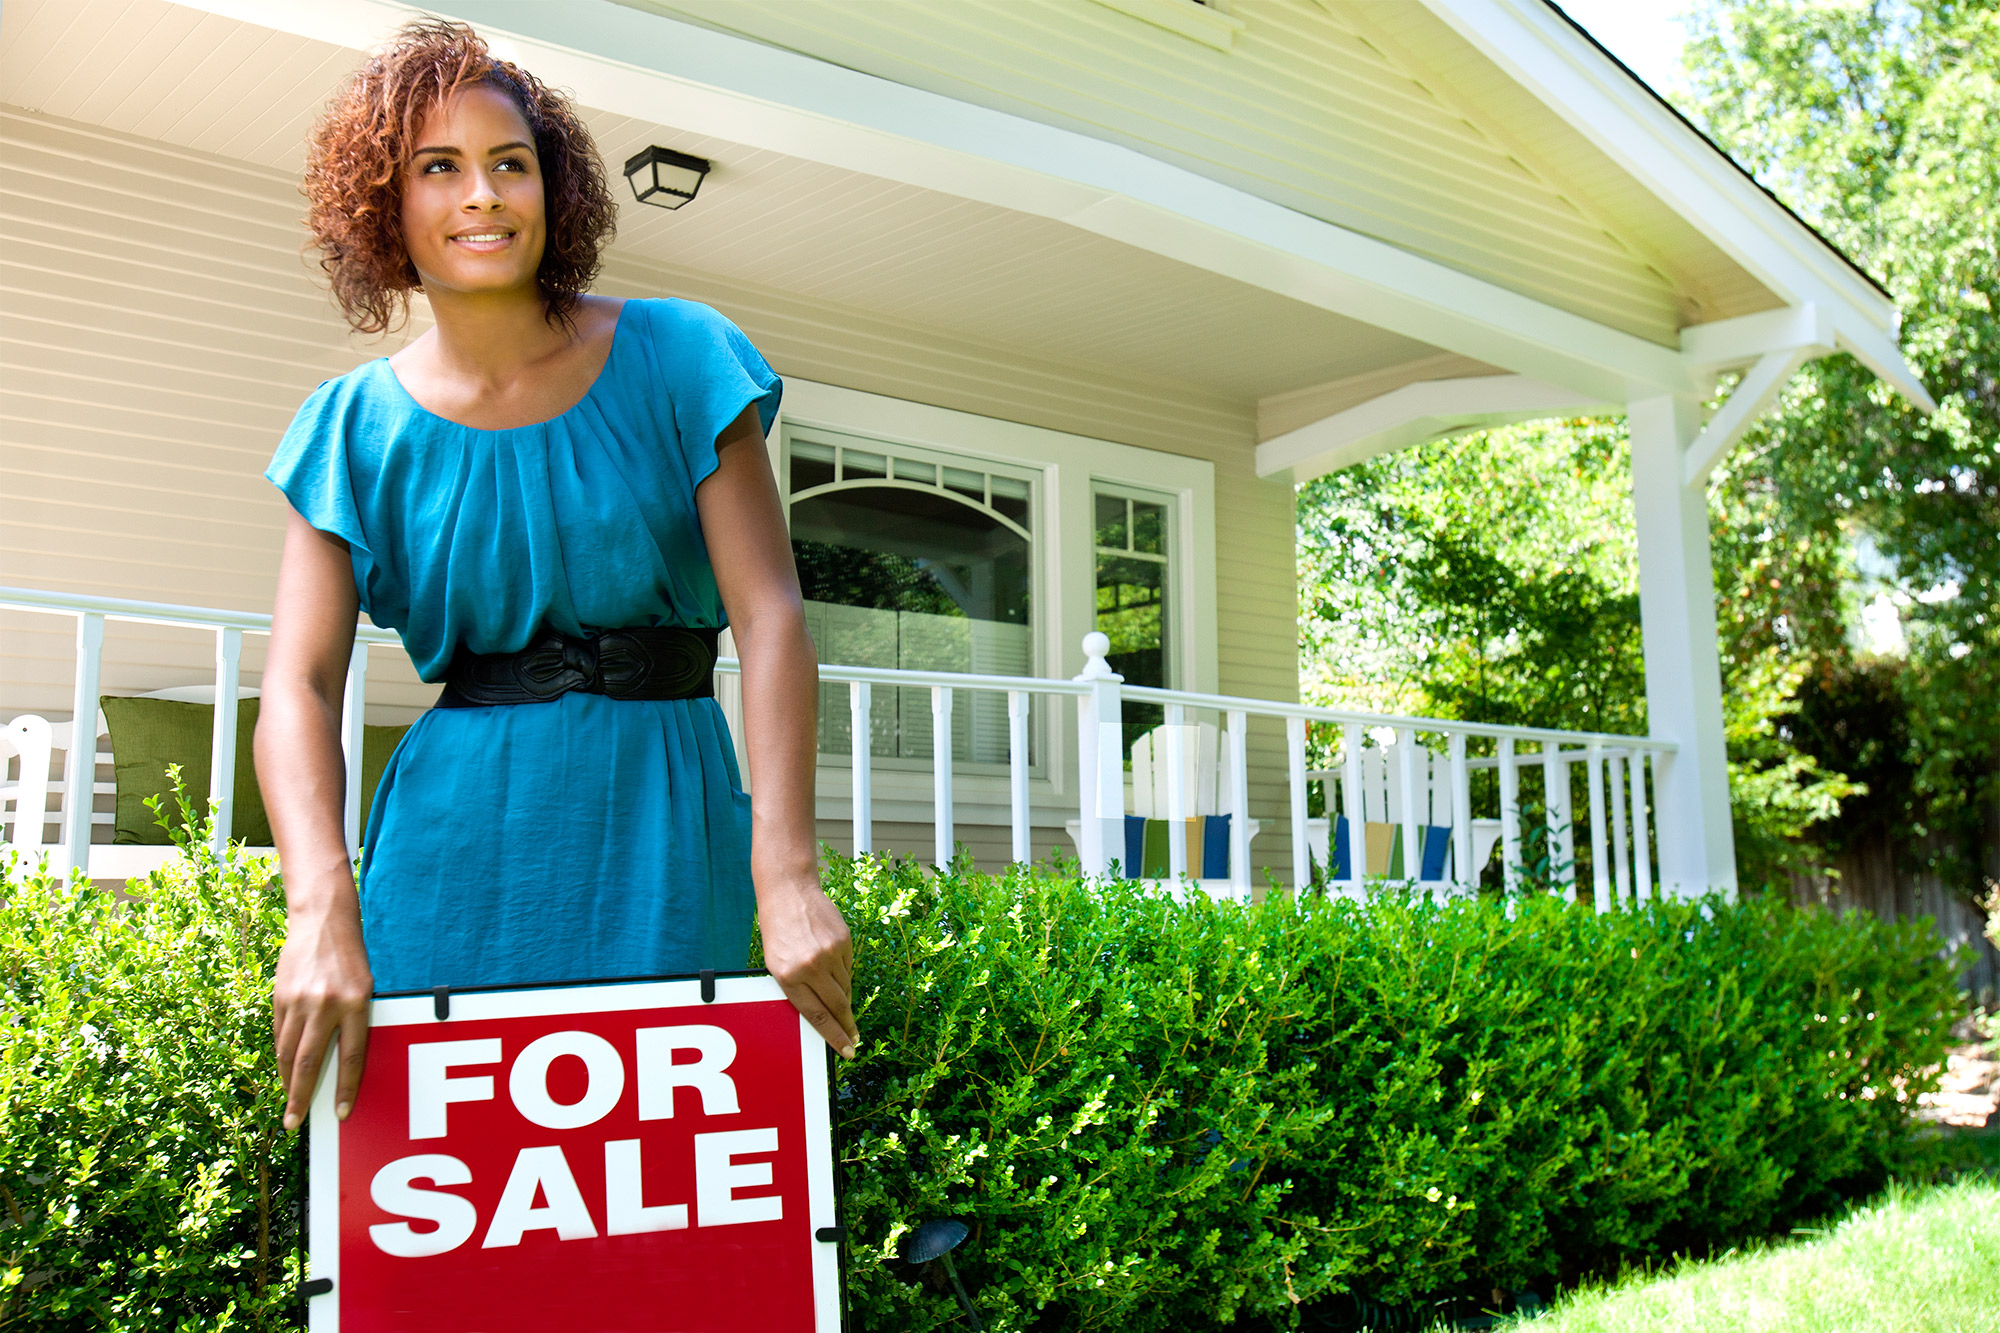 Realtor with sign